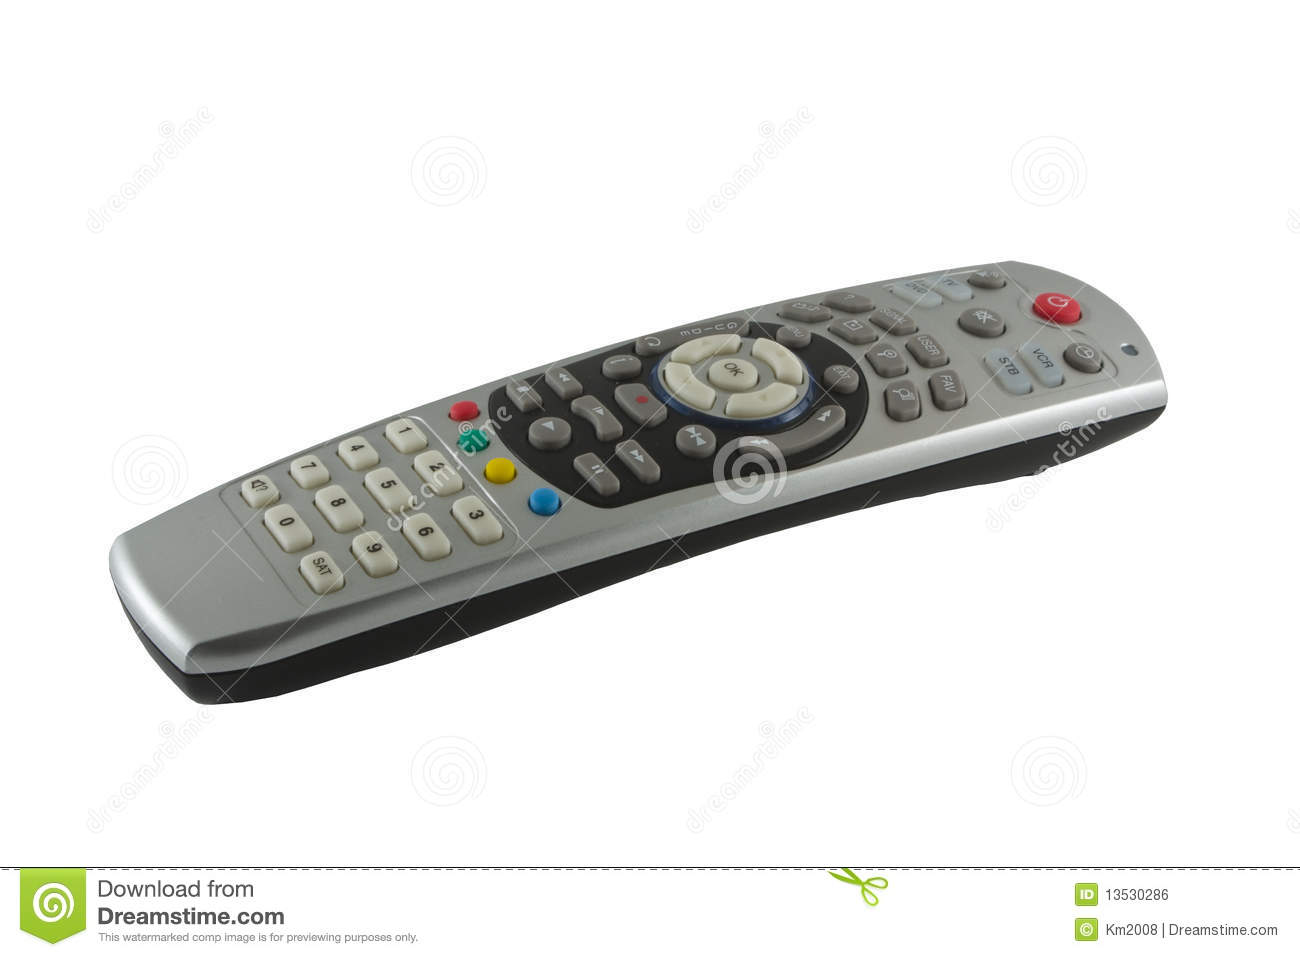 Satellite TV Remote control